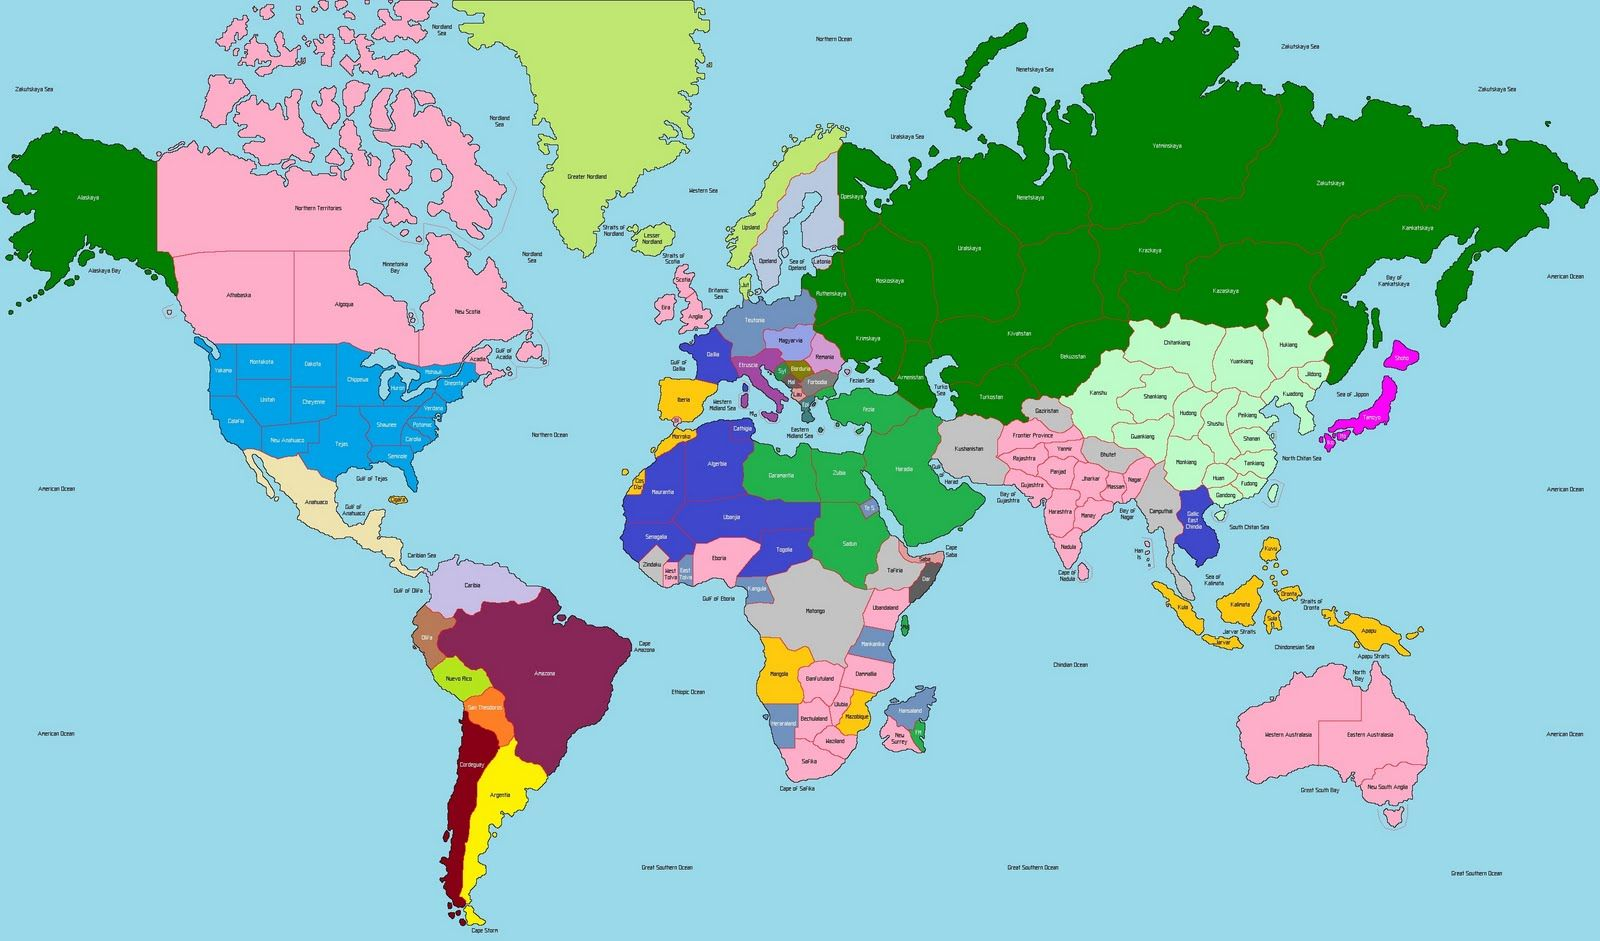 World map continents inside continent throughout pattravel me world map continents and oceans may need to make a few additions world map showing gumiabroncs Gallery